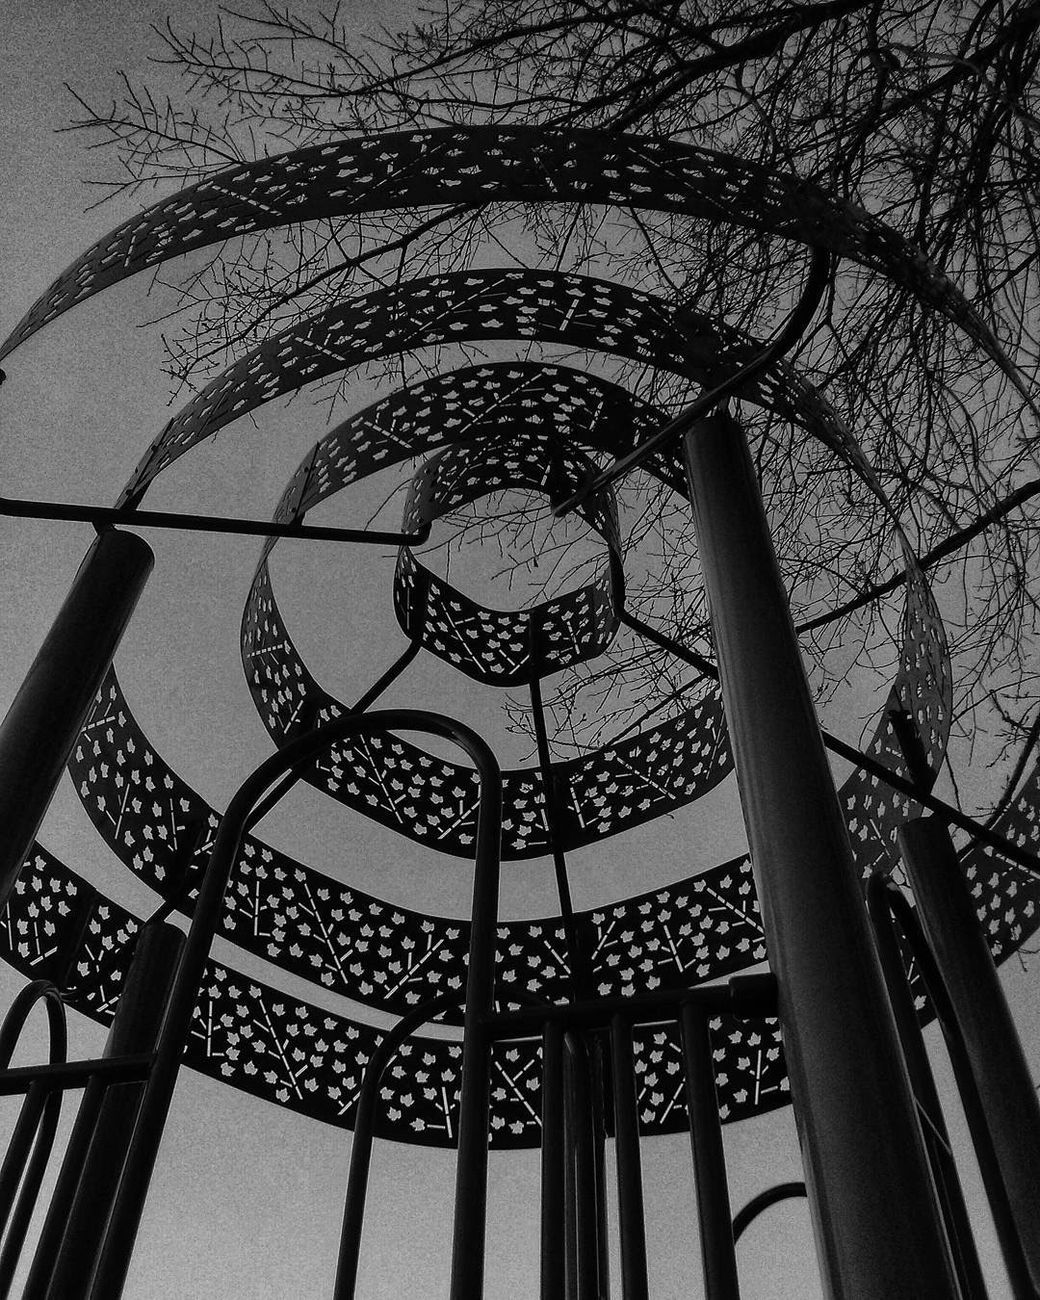 01 Life is a Spiral BY Yannis Lobaina  This is a series inspired by life and its cycles as spirals of being itself.